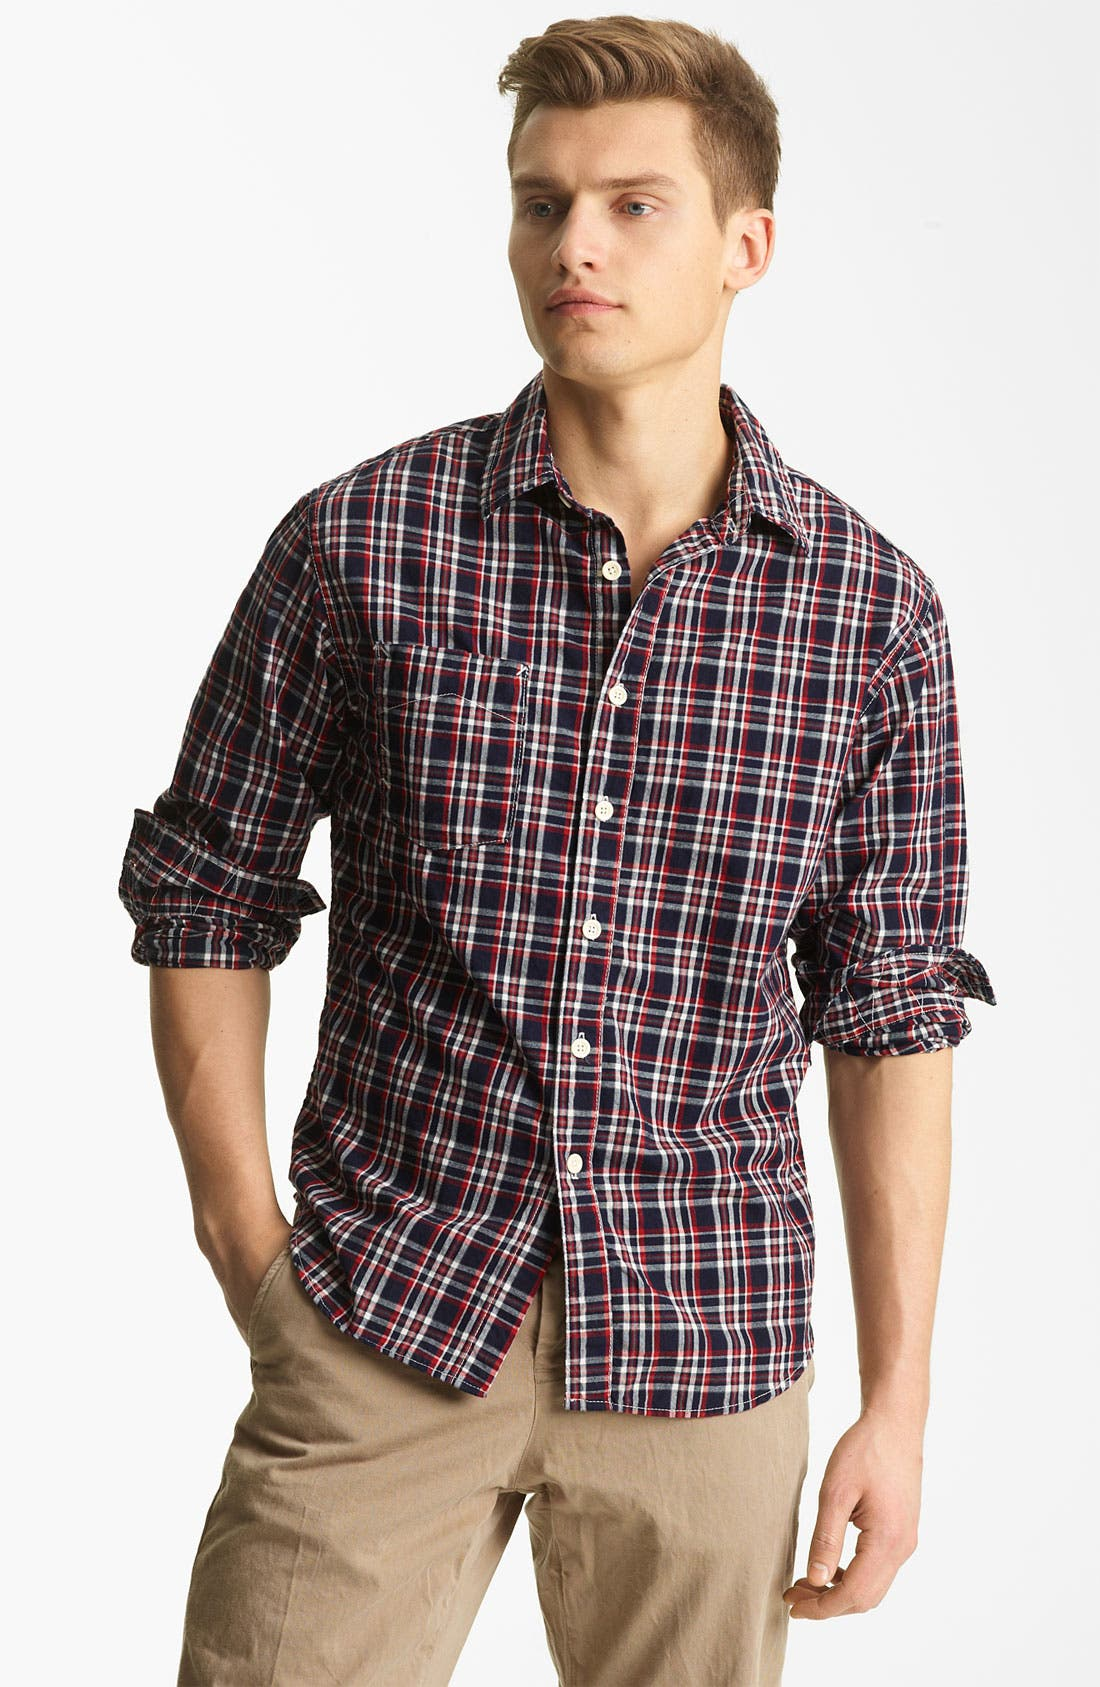 Alternate Image 1 Selected - Billy Reid 'Elkins' Plaid Woven Shirt